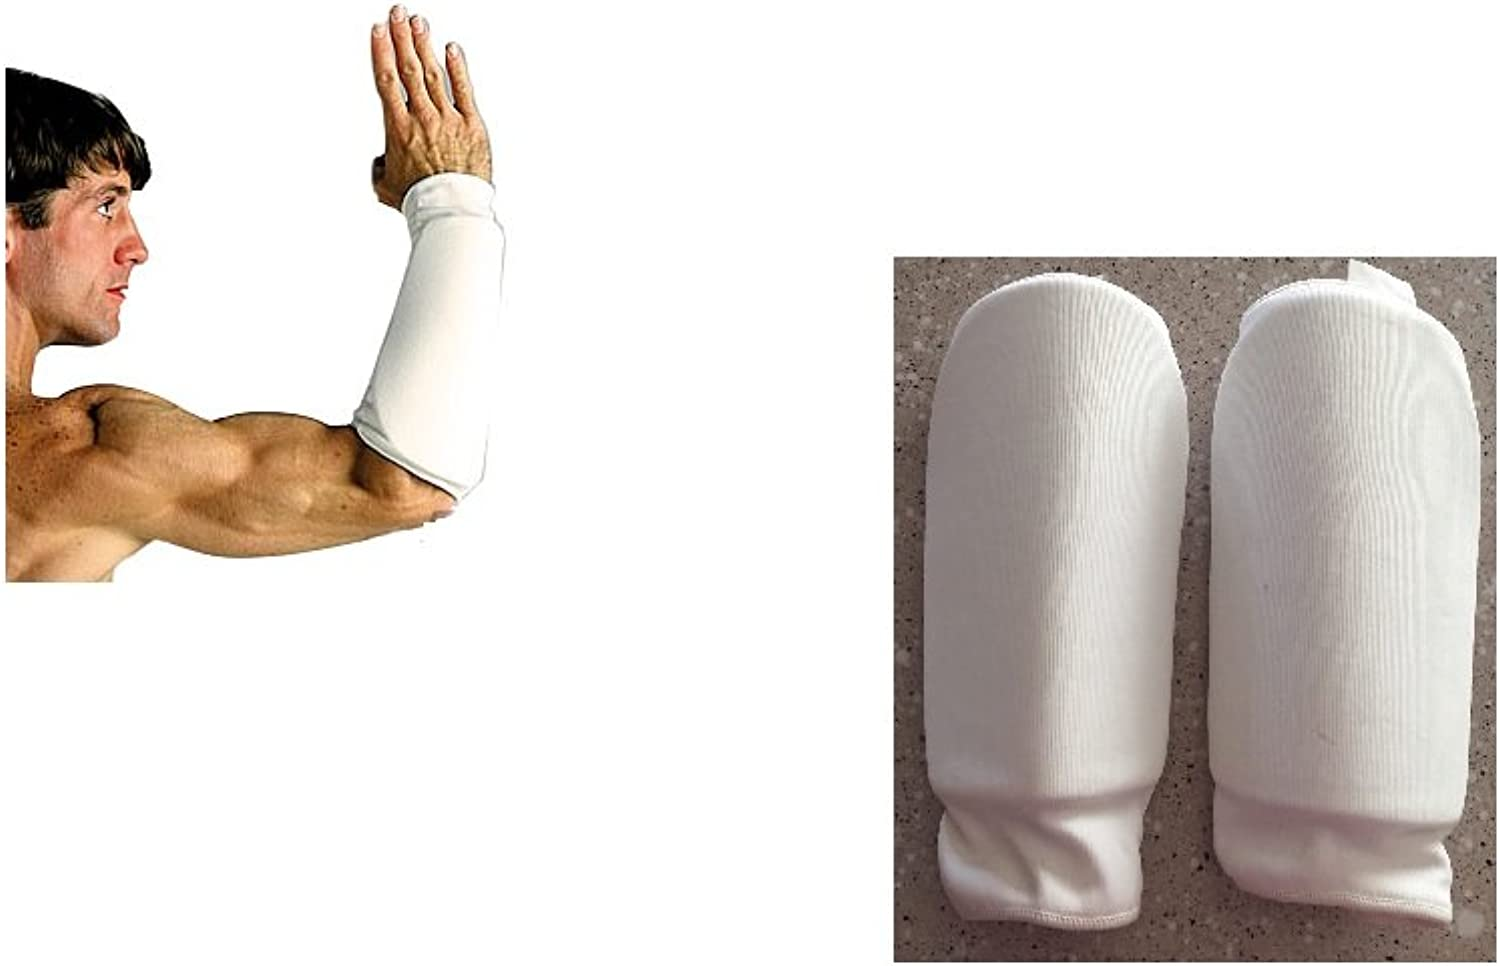 ProForce Forearm Guard  White Large  5 1 2  wide x 12  long 3 packs